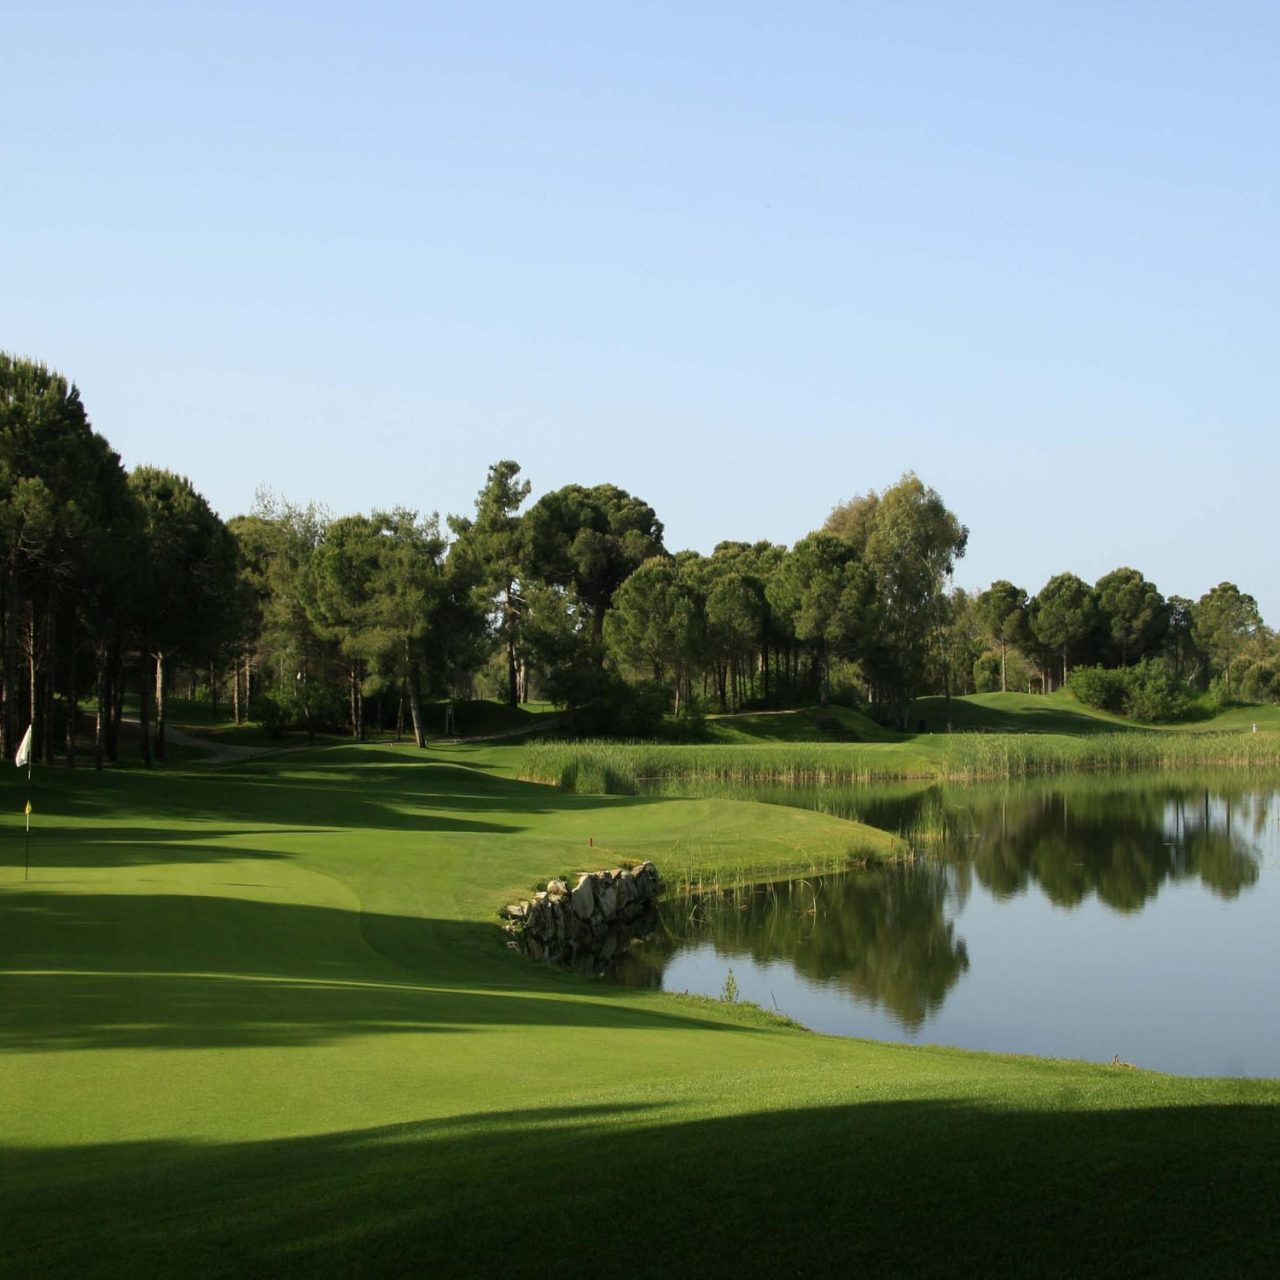 Antalya Golf Club, Belek, Antalya, Turkey